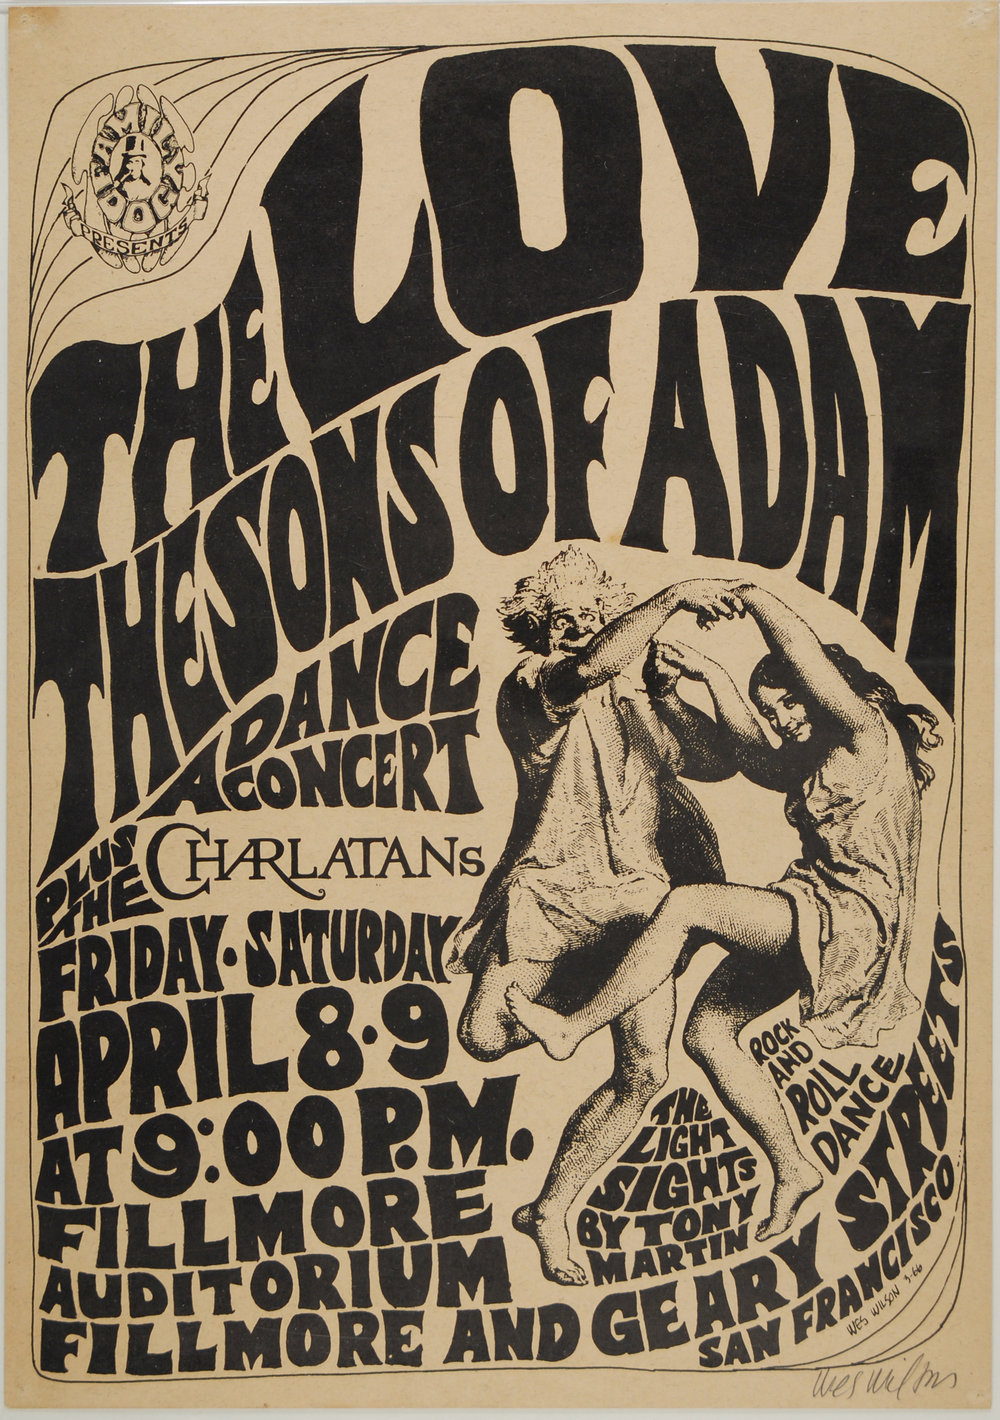 Love Avalon Ballroom